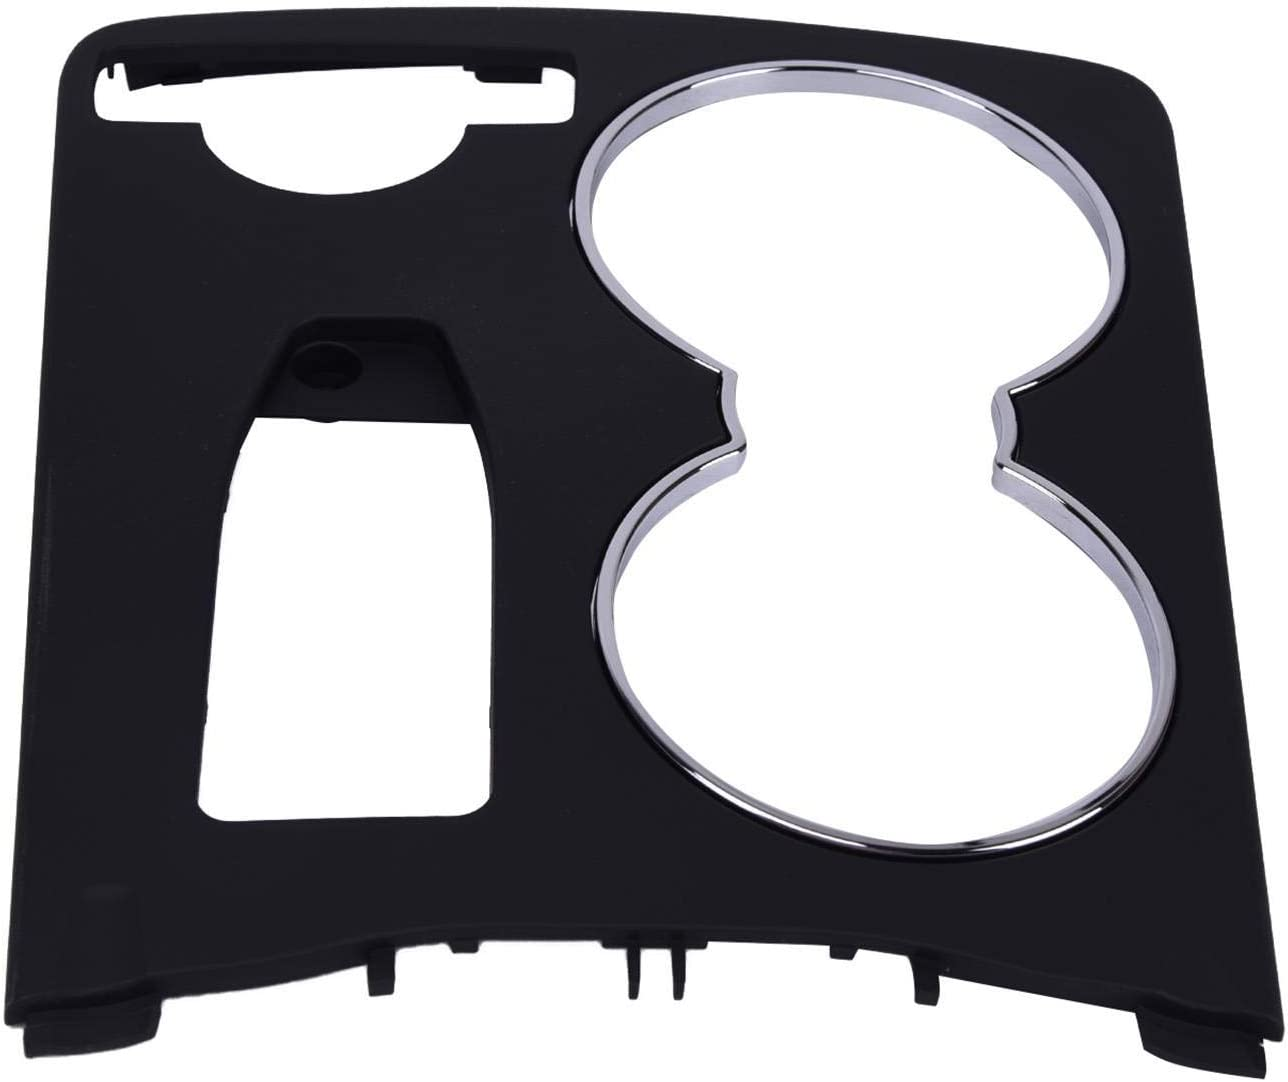 Replacement Parts Interior Auto Vehicle Accessory for Mercedes ...